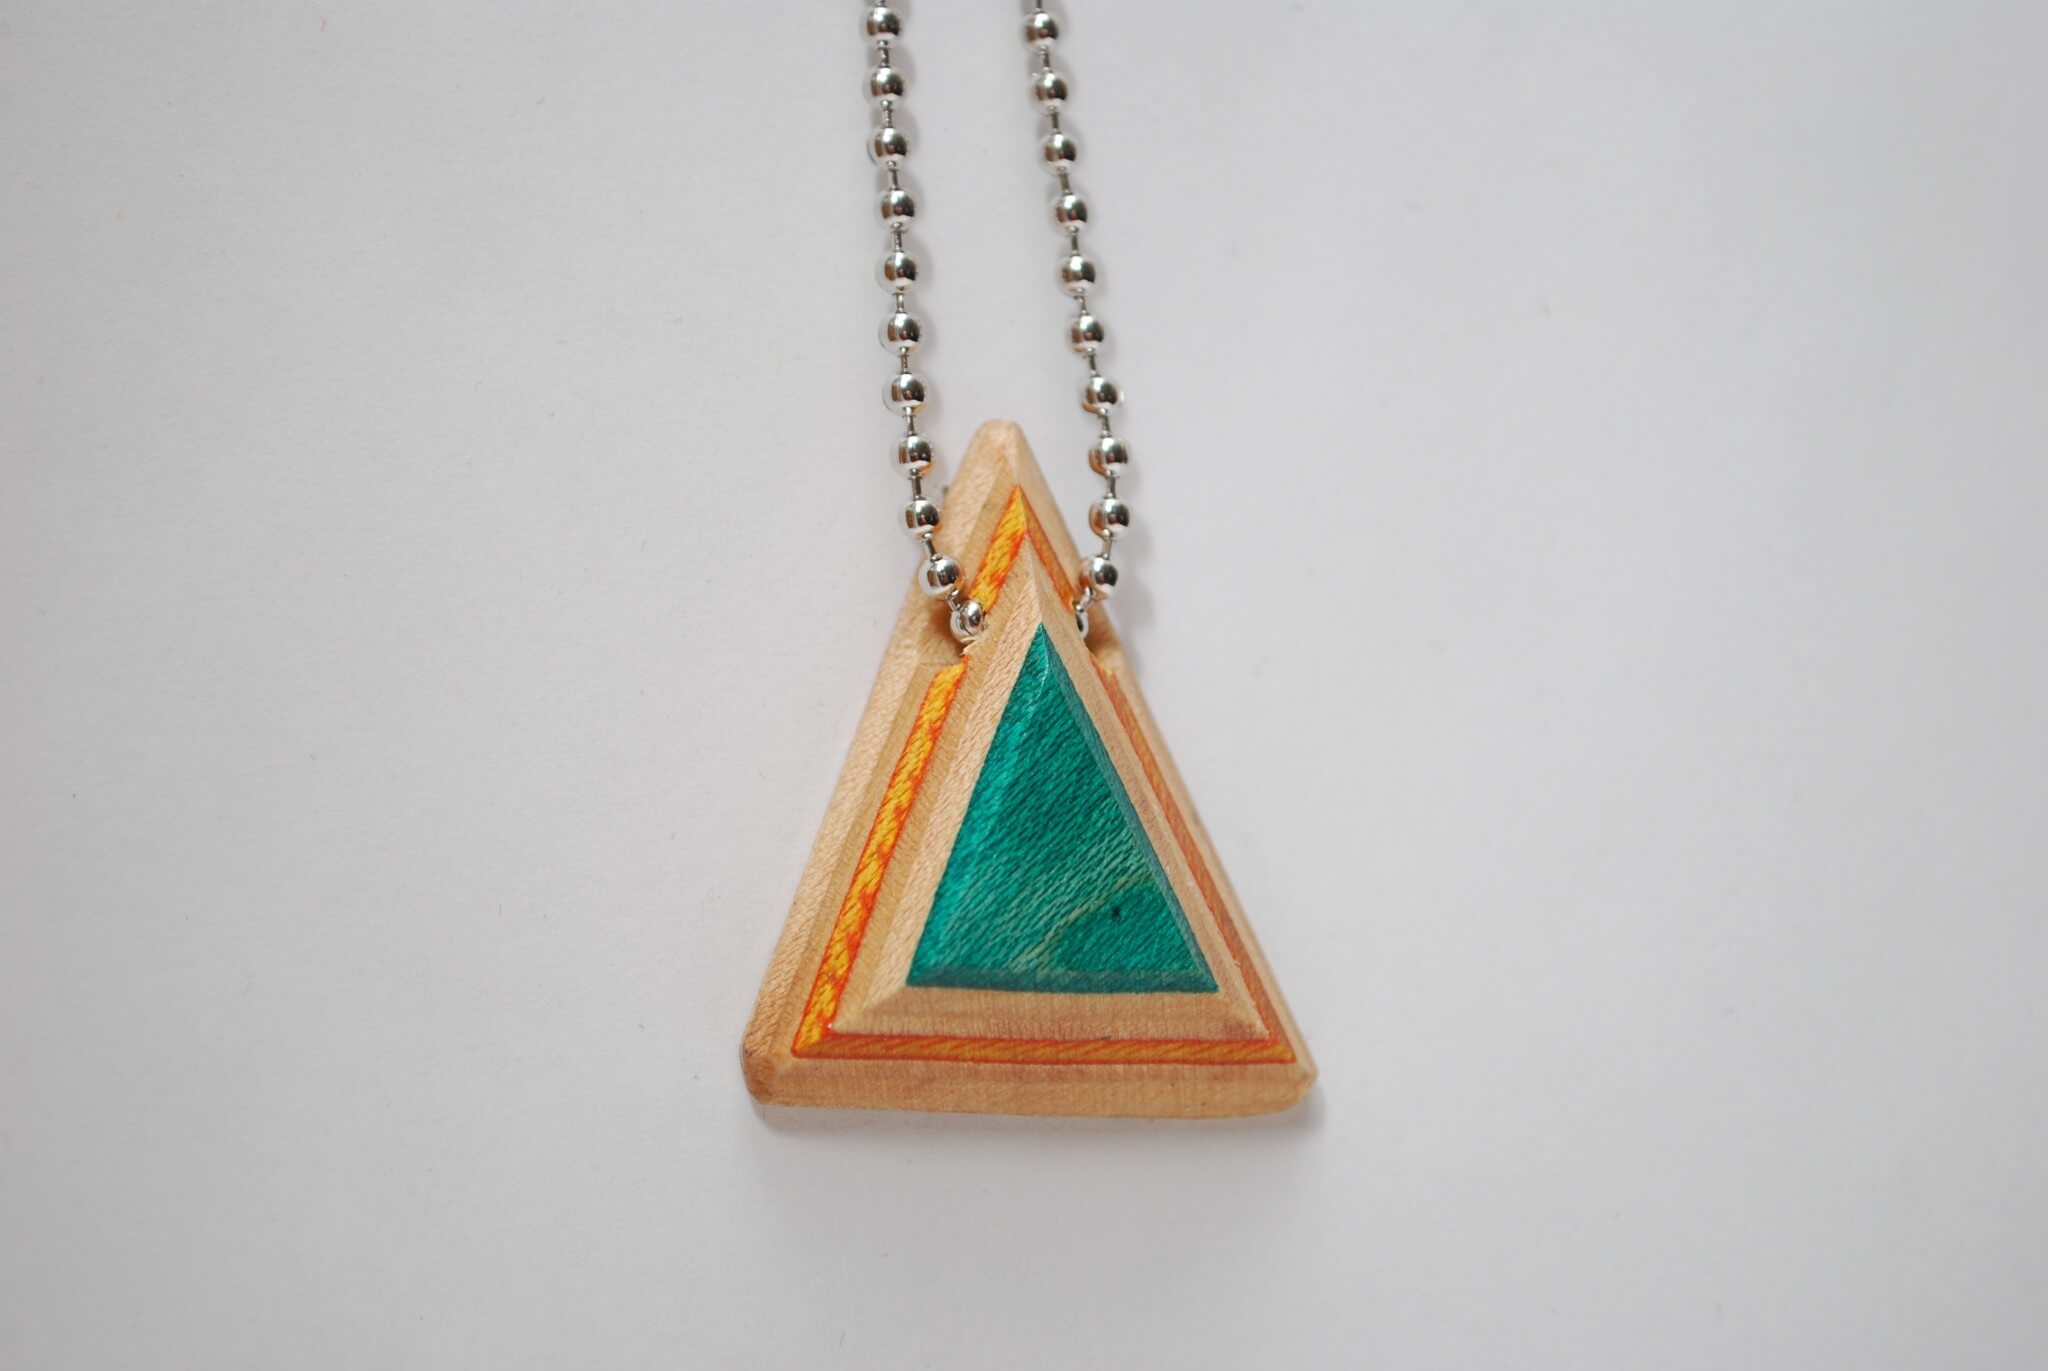 skateboard necklace, skate jewelry, gifts for skaters